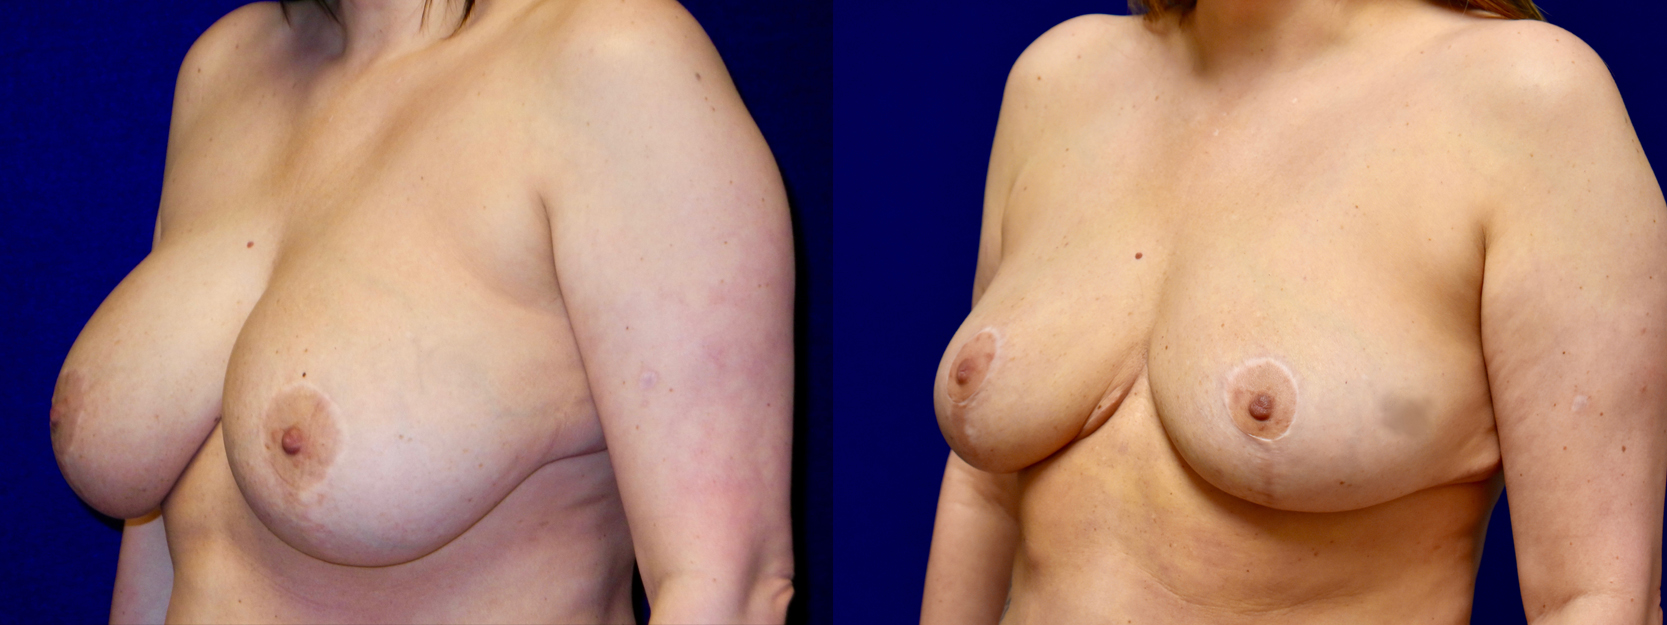 Left 3/4 View - Breast Implant Removal with Reduction and Lift